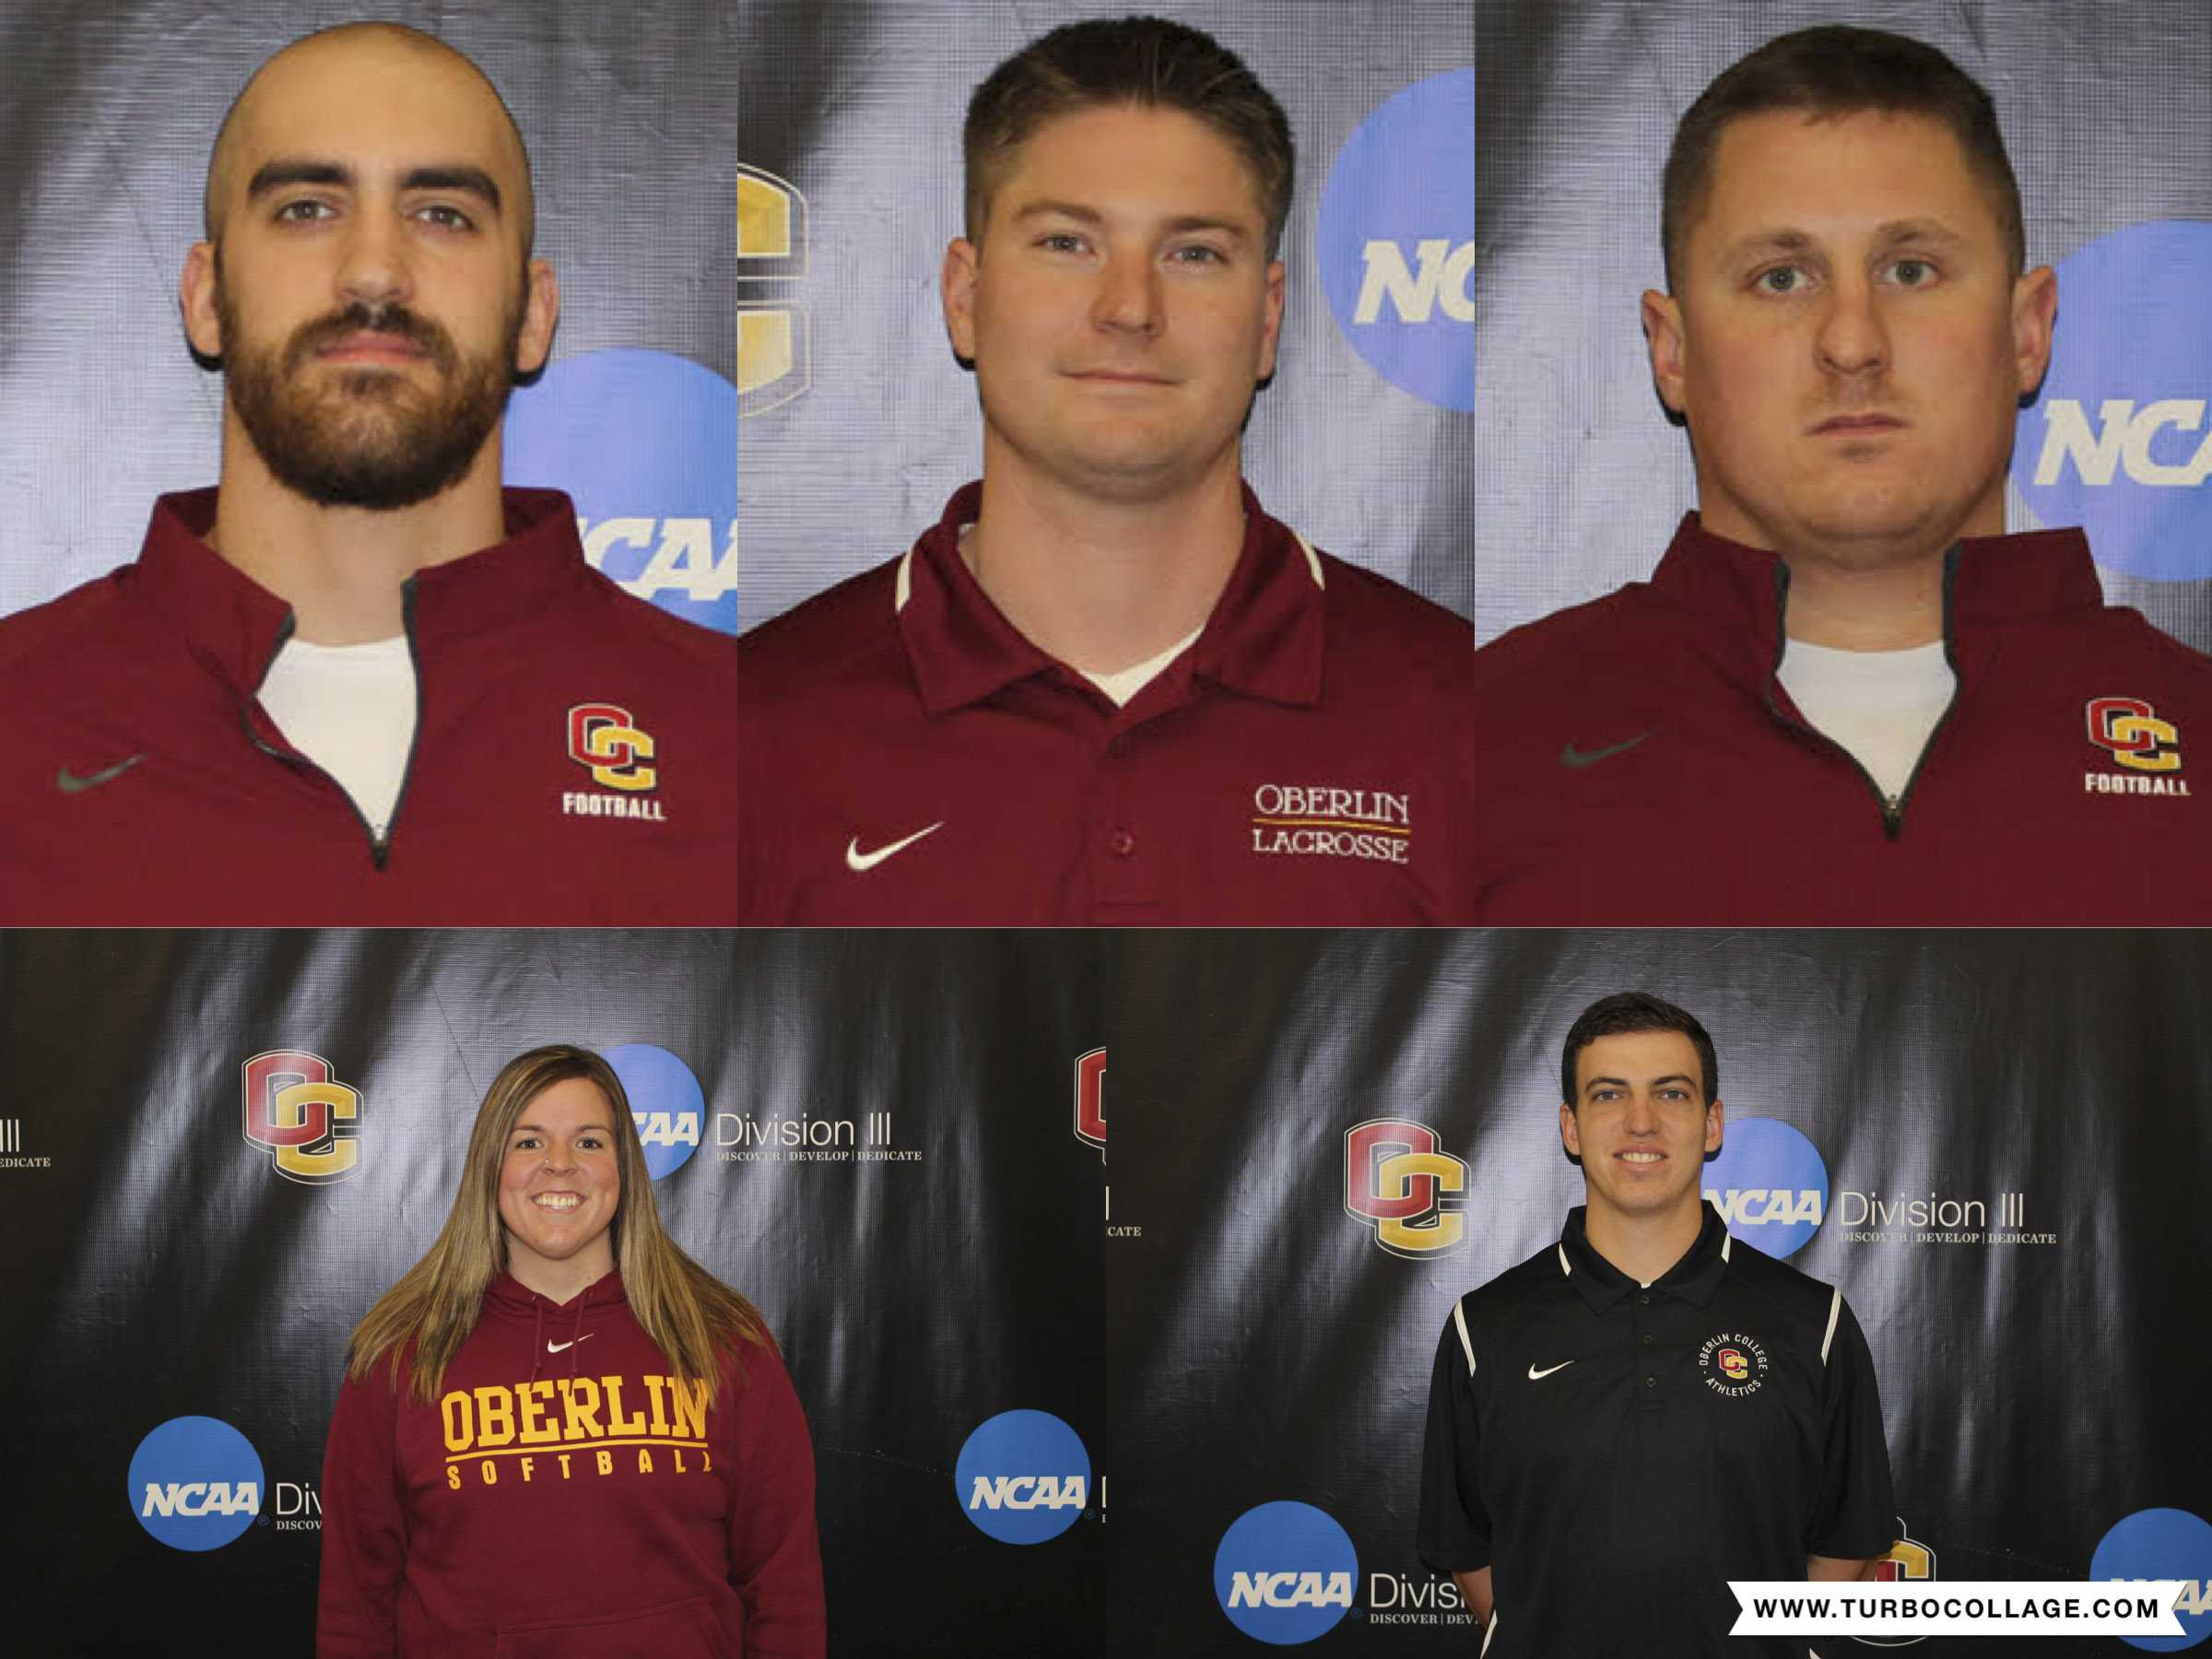 The Oberlin Athletics Department ushered in five new assistant coaches this January. Top row (left to right): Ben Gysin, Alec Chisholm and Garrett Mack. Bottom row (left to right): Olivia Wulfhoop and Brandon Jossey.